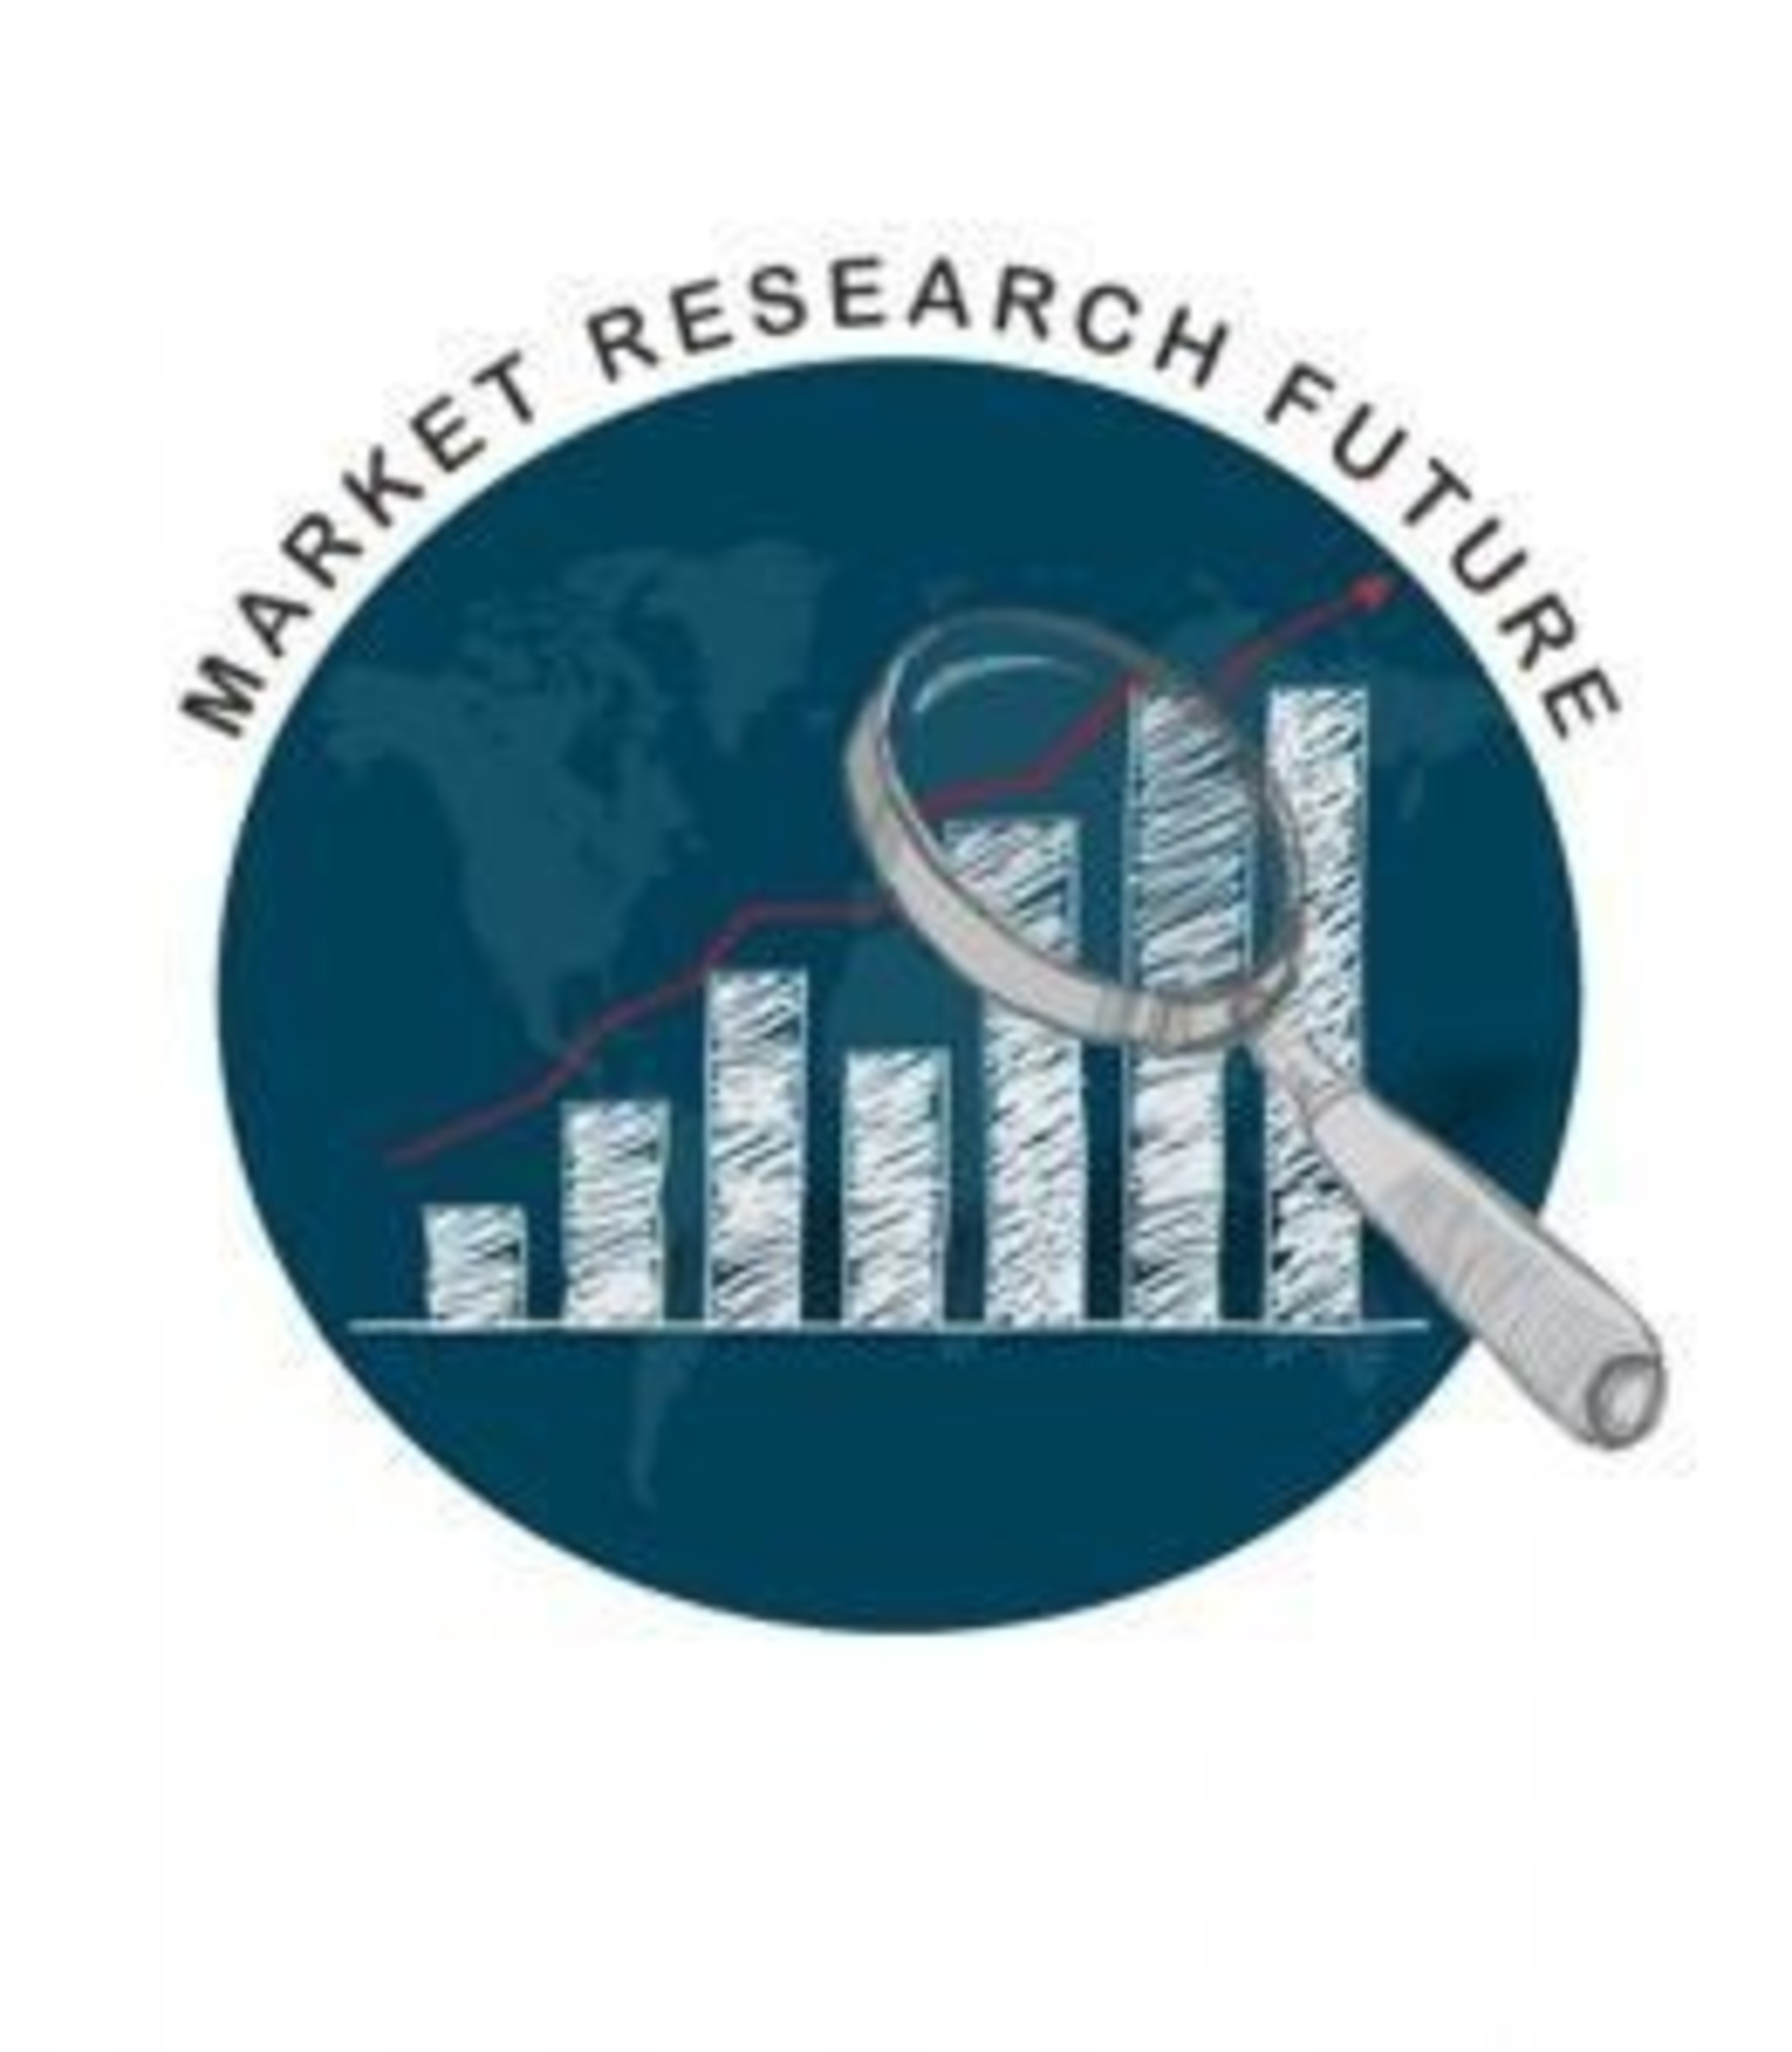 Global Automatic Content Recognition Market, by Technology (Speech recognition, Digital watermark, Passive fingerprinting), by Application - Competitive Strategies to 202